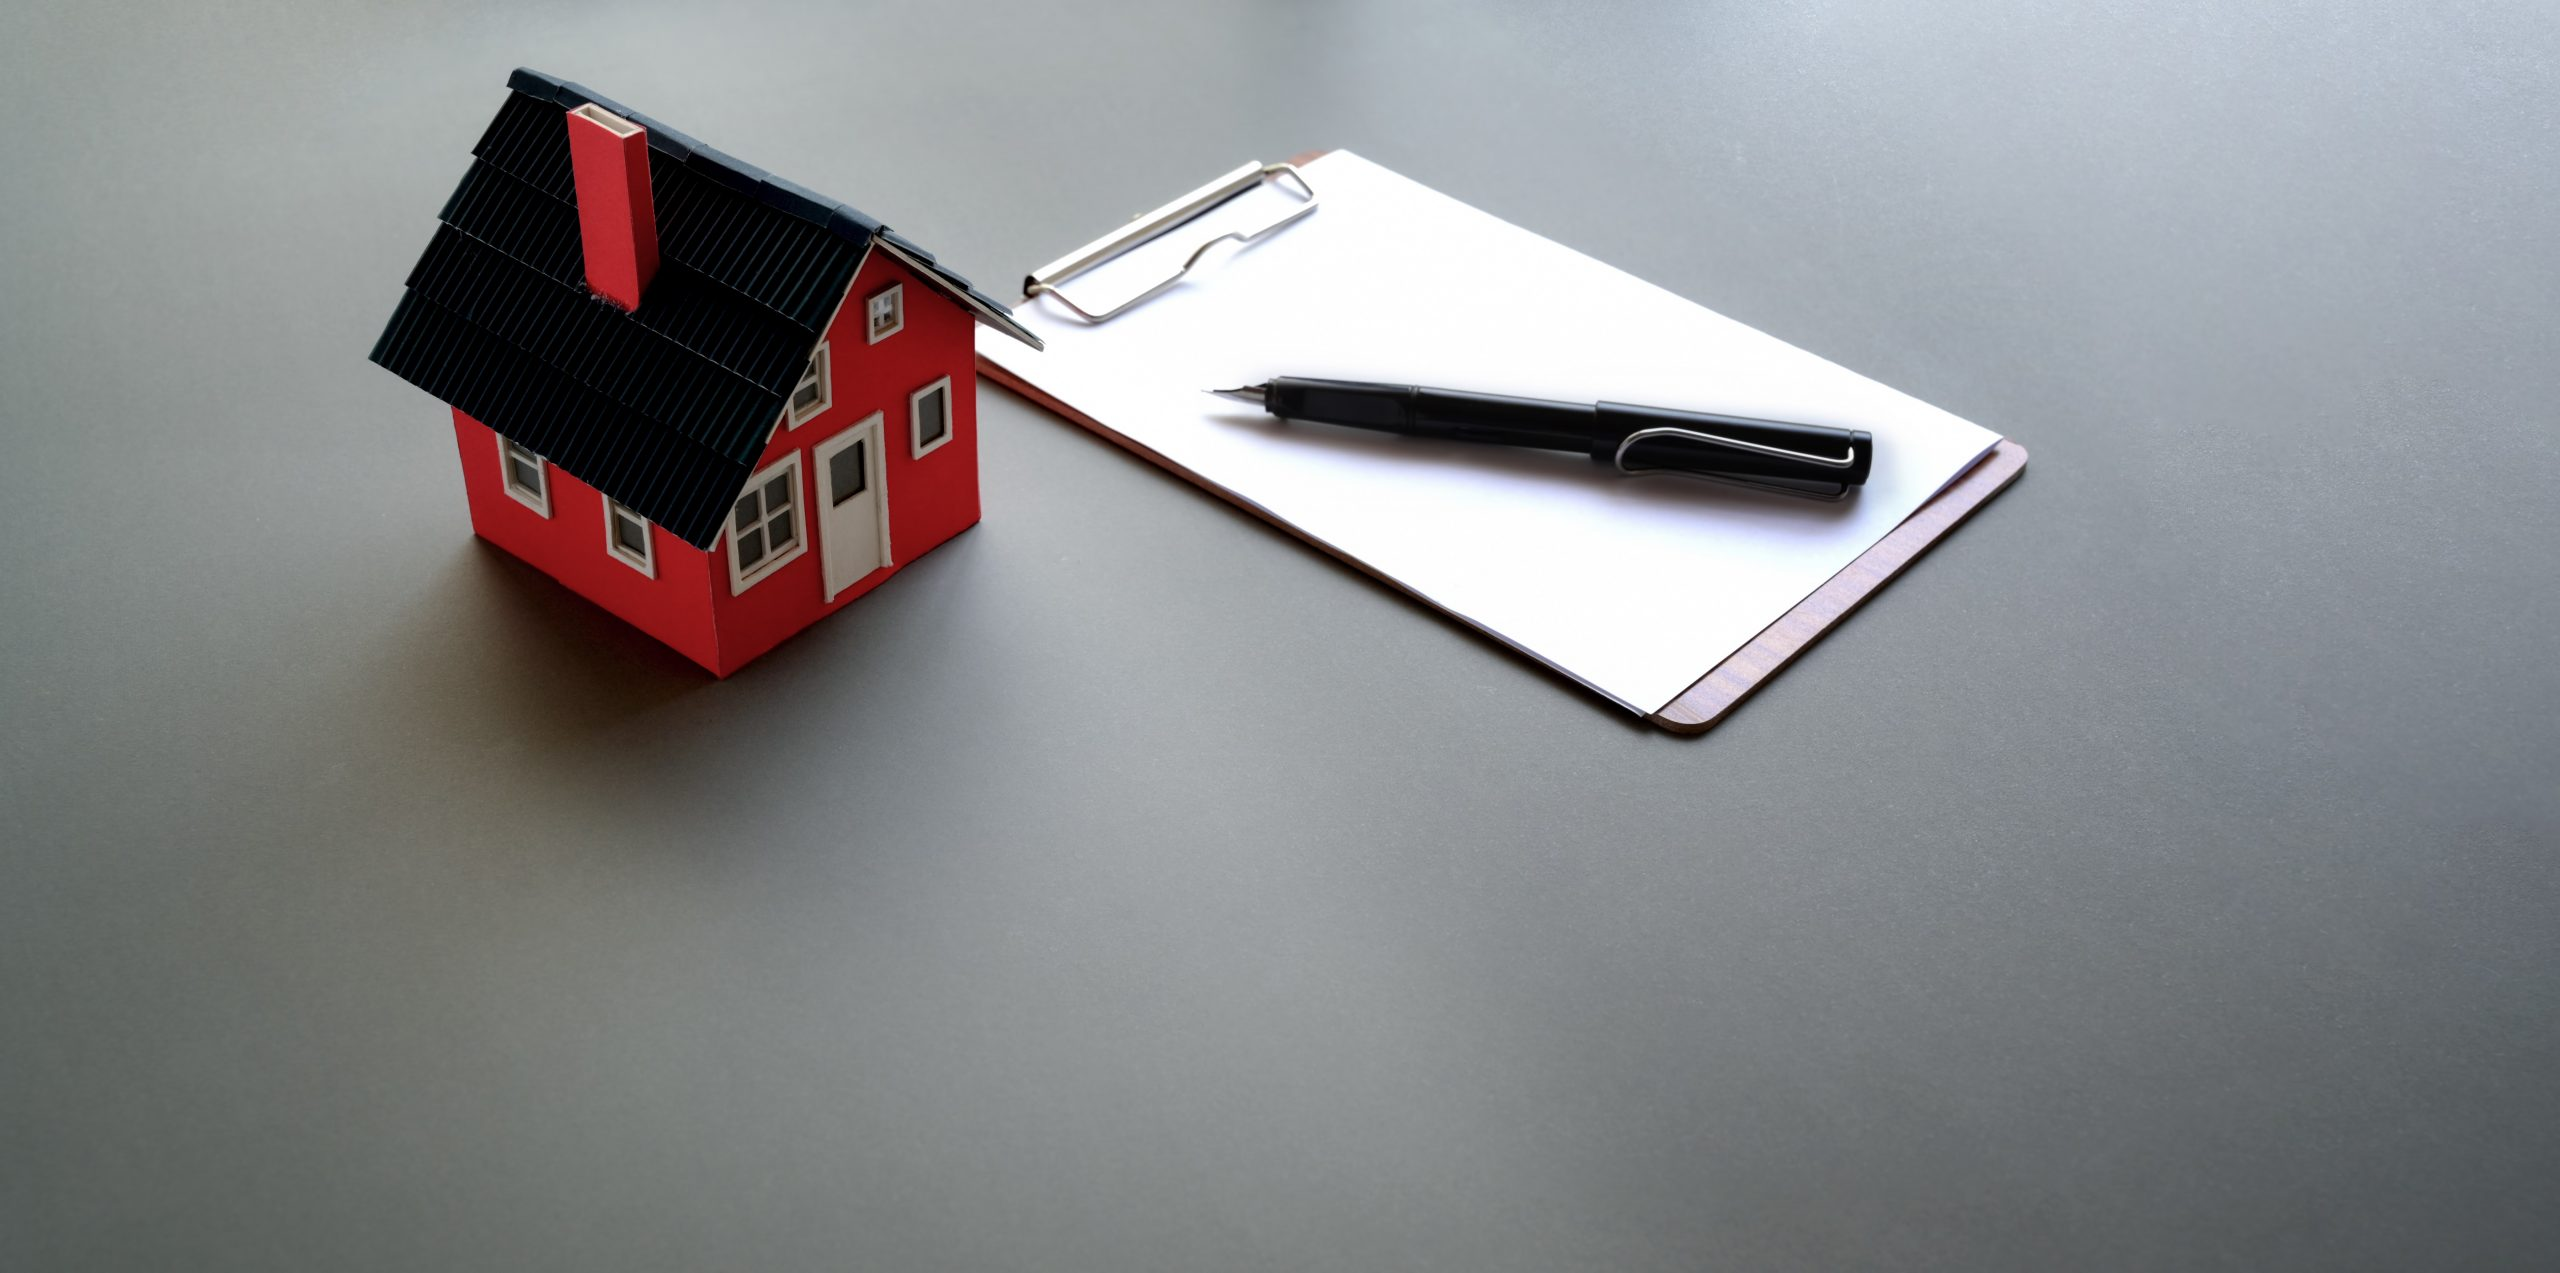 Can Home Loan Considered in the Affordable Category?